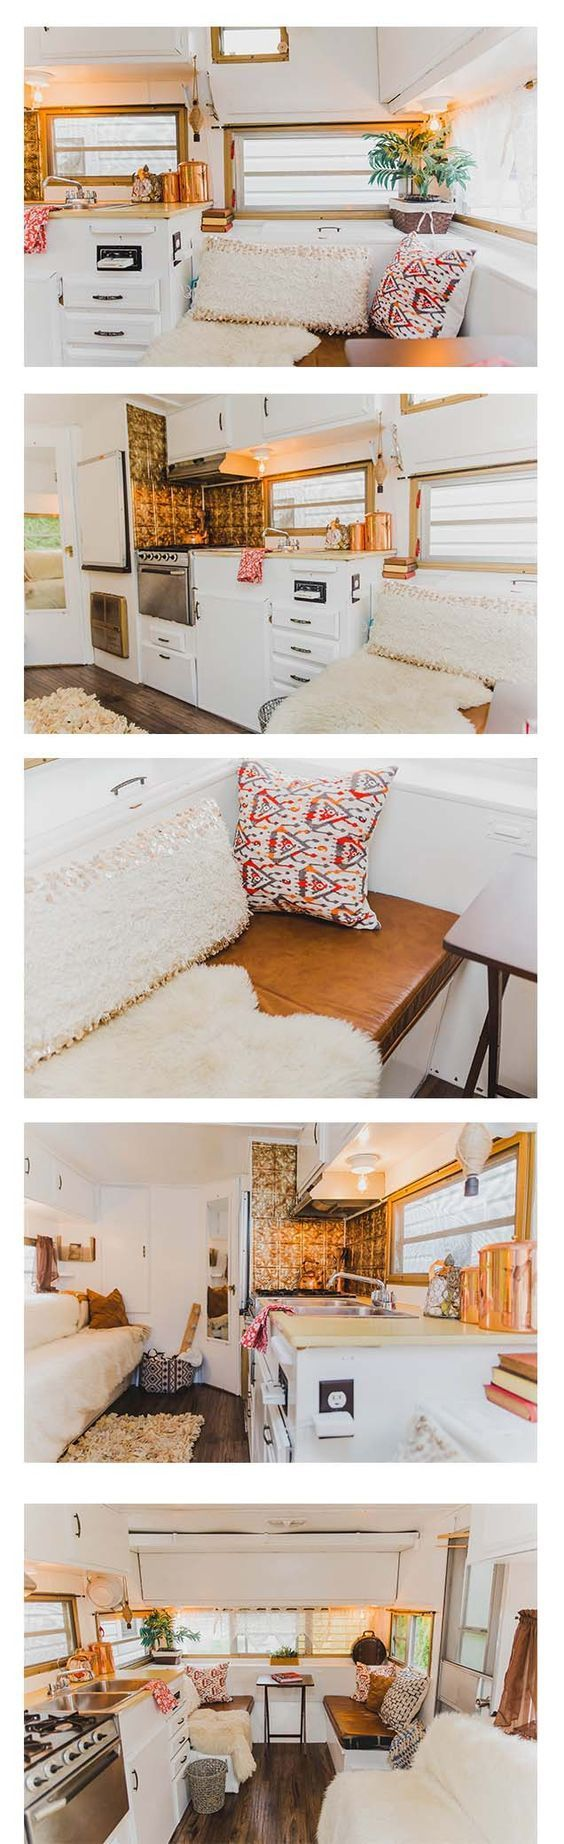 Inspiring 101 Amazing Ideas for Renovating Camper https://decoratoo.com/2017/05/28/101-amazing-ideas-renovating-camper/ At this time the joint owners have to reach some agreements on several points. It's advisable in case the ship's owners do not need to handle every employee issue or concern.